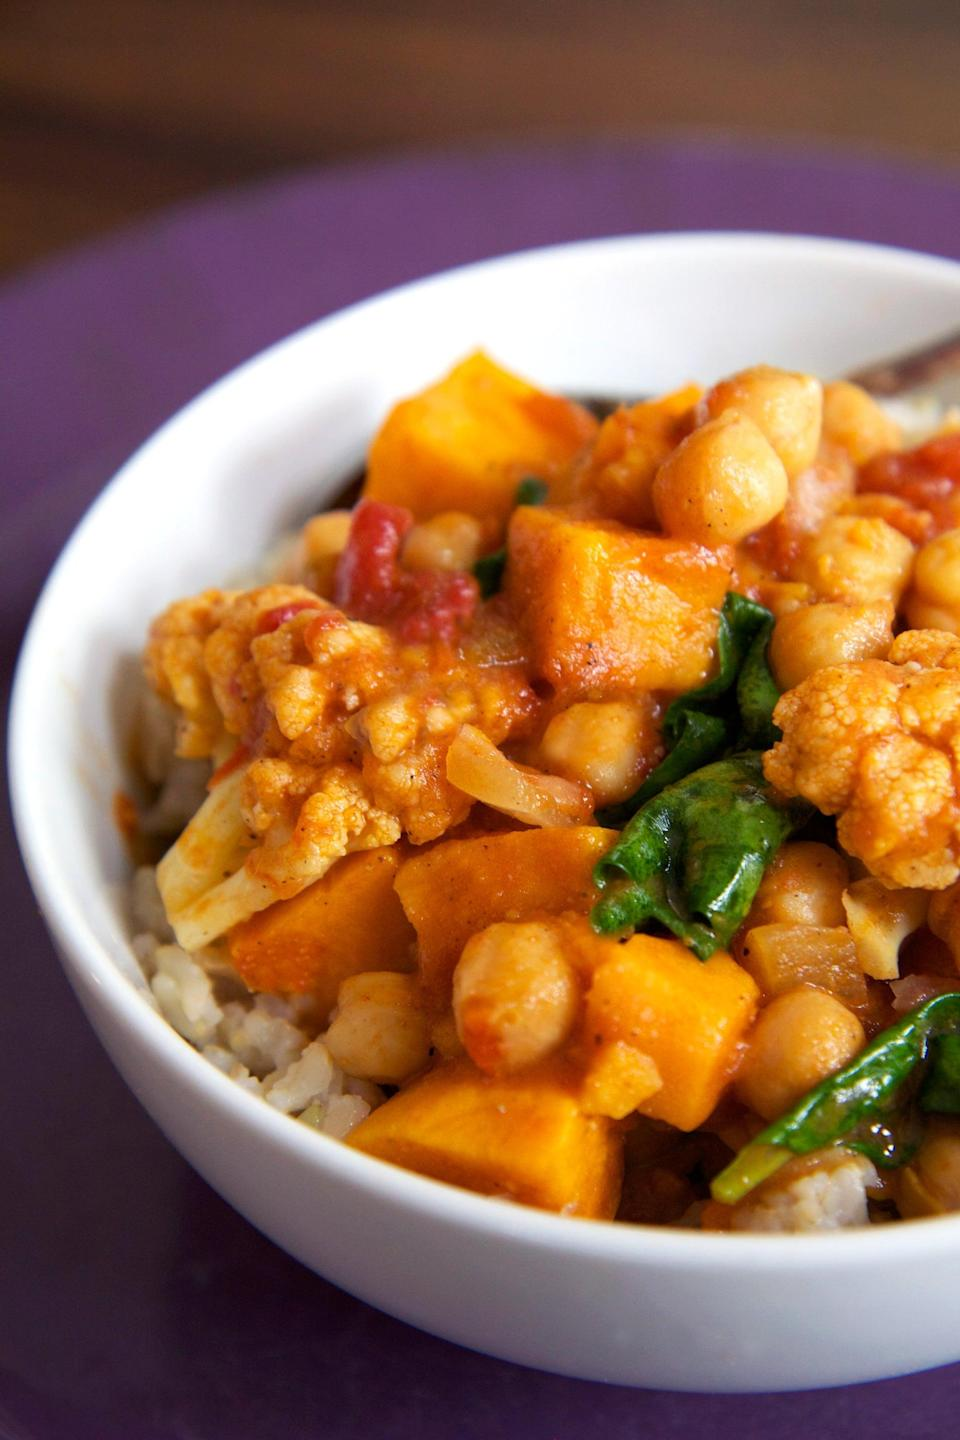 <p>Add creaminess to curries and soups without cream by adding in some Trader Joe's frozen Mashed Sweet Potatoes.</p>